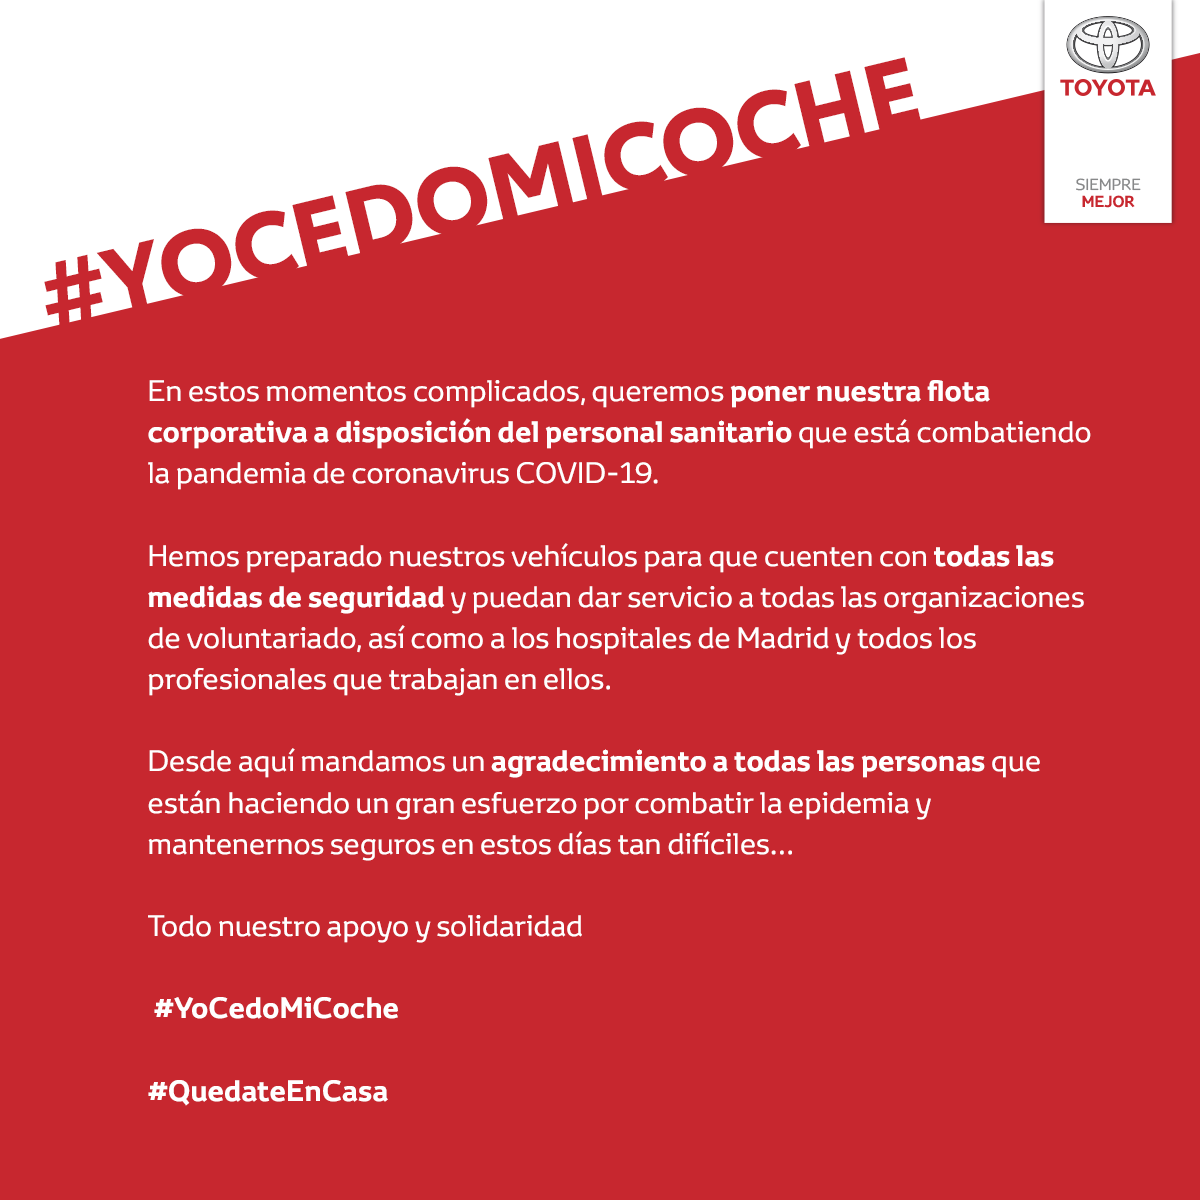 yocedomicoche